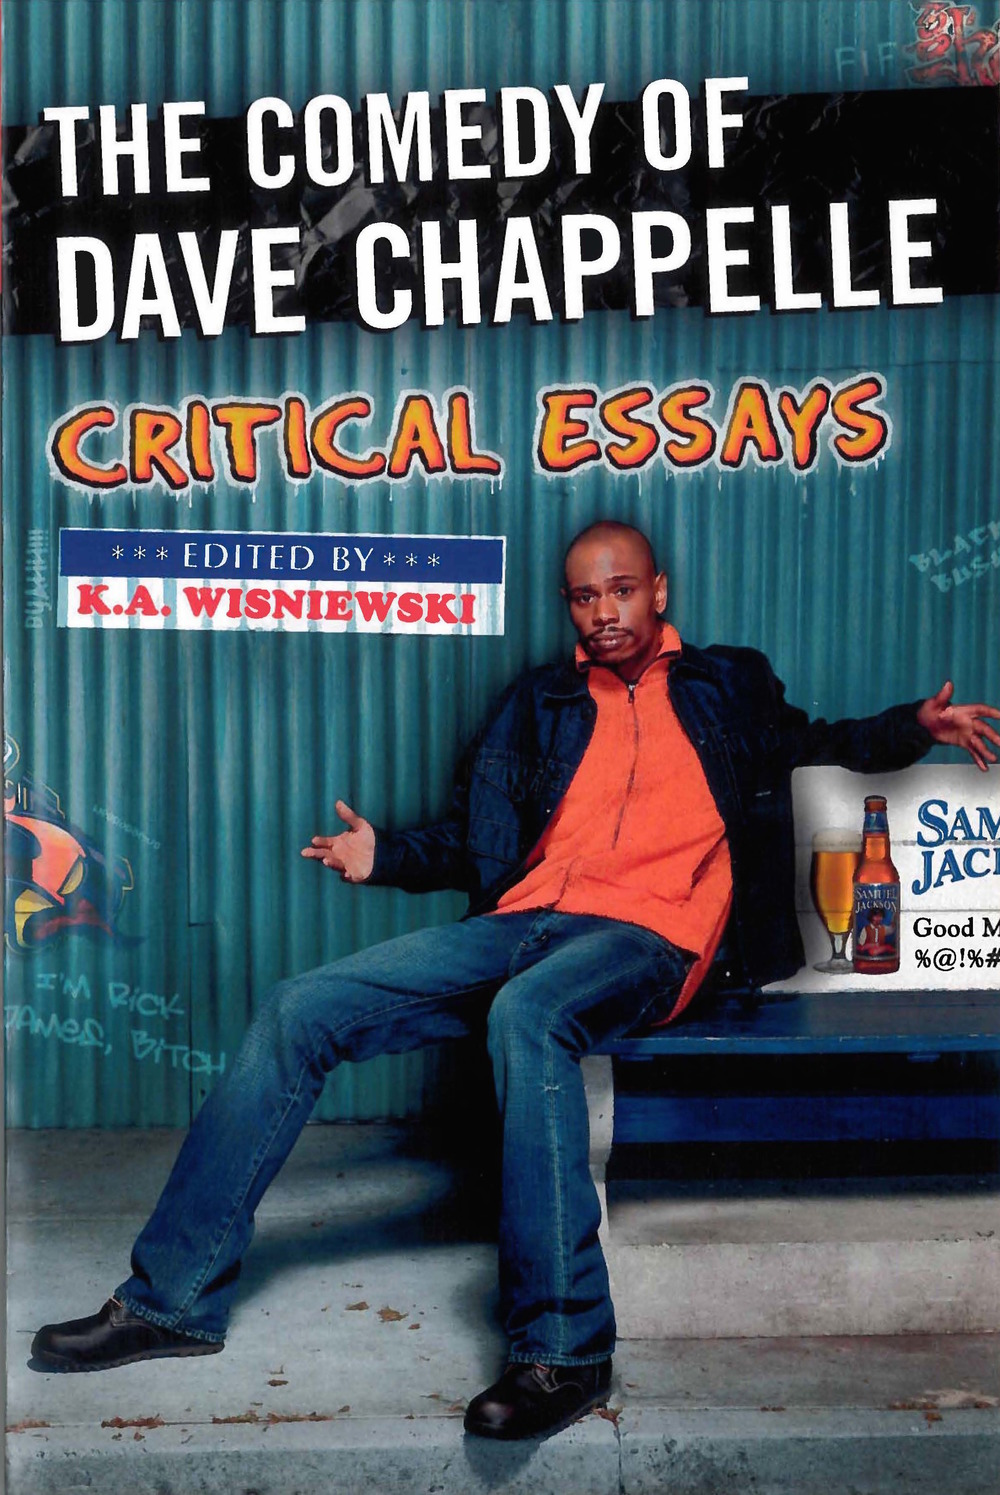 The Comedy of Dave Chappelle